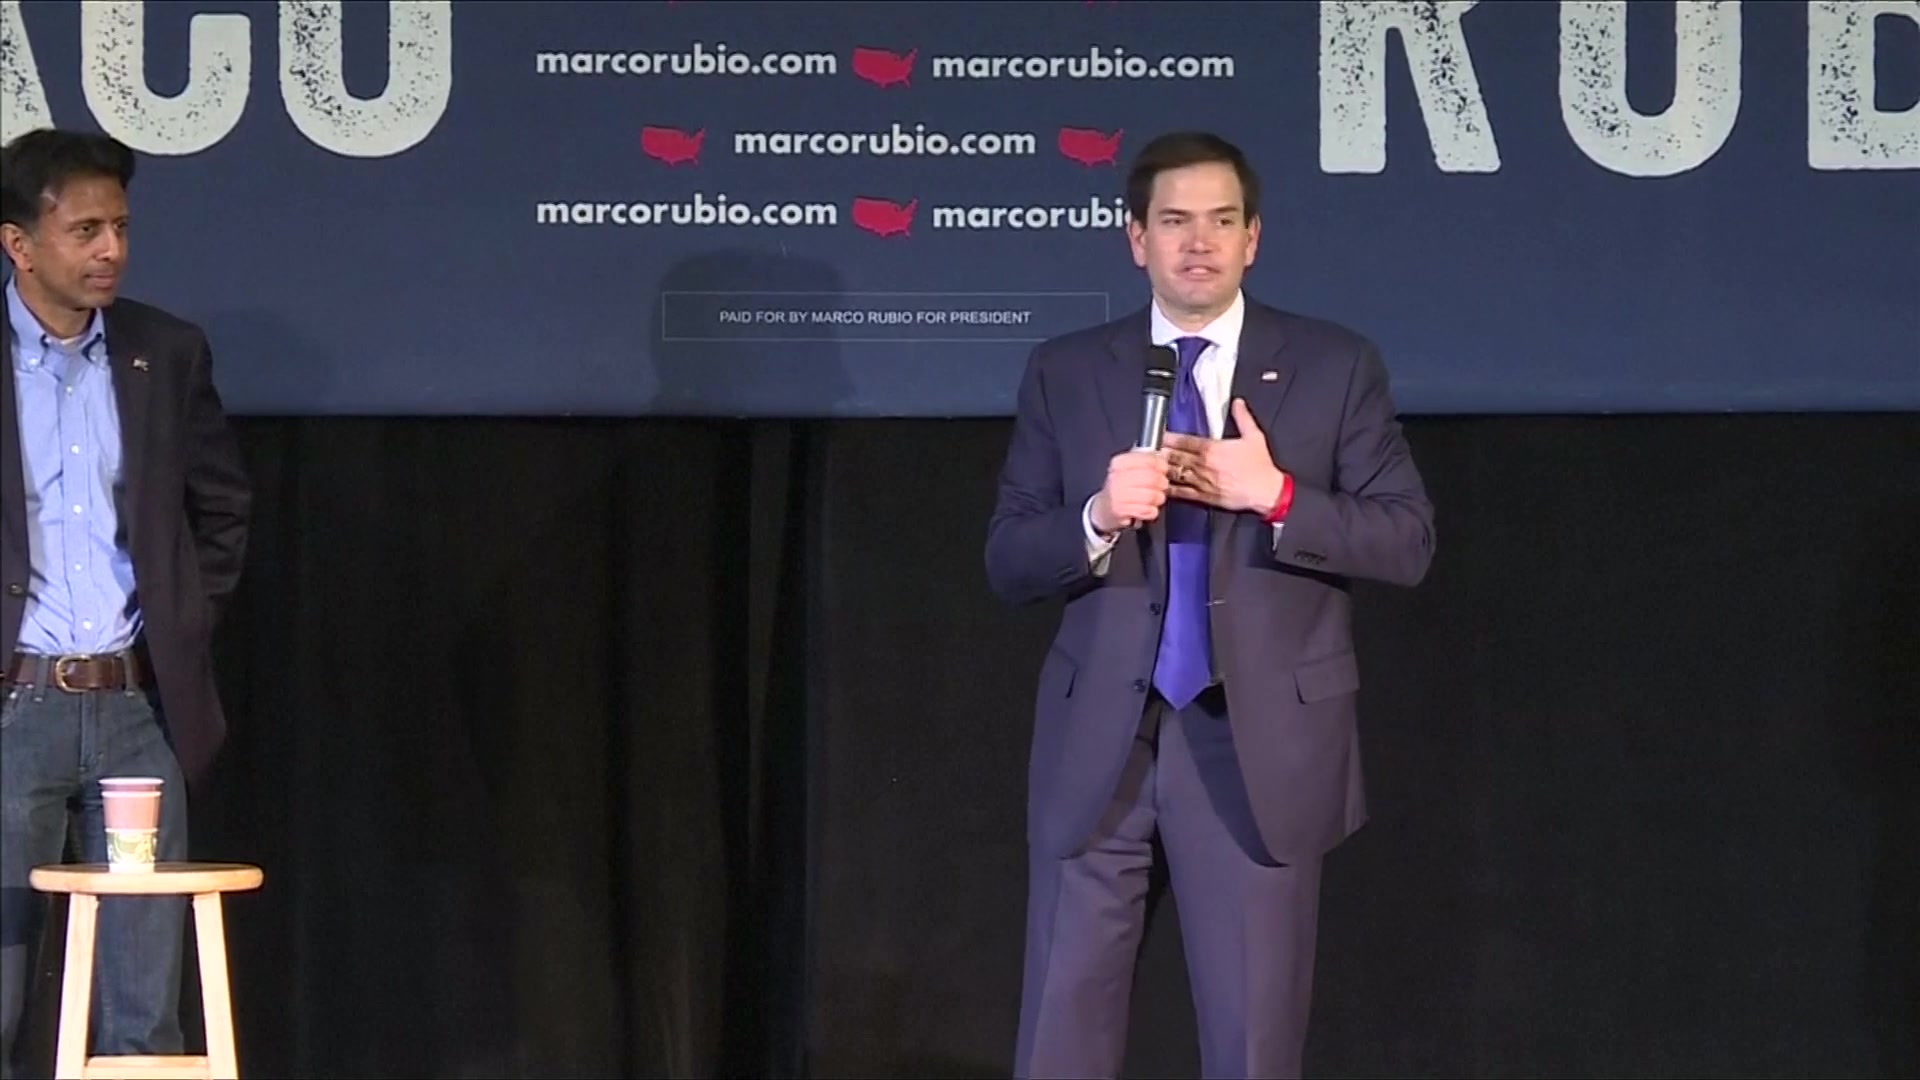 Marco Rubio: 'No Place for KKK'